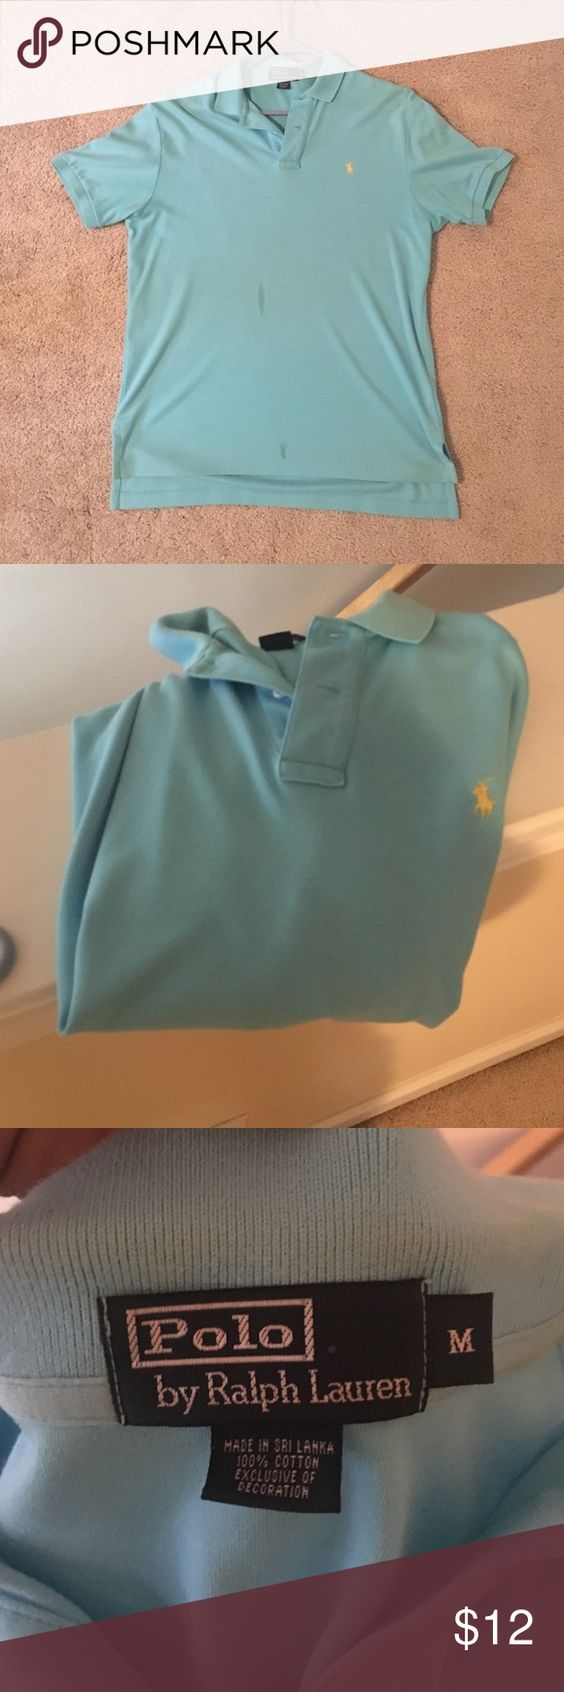 Blue polo! nice shirt. Looks to have two small stains on the front which can be washed out. And the neck is close to being yellowed but not bad. It doesn't fit anymore so we are selling. Price is very low due to the wash you will have to do when you get it. But other than that it's a good deal! Polo by Ralph Lauren Shirts Polos